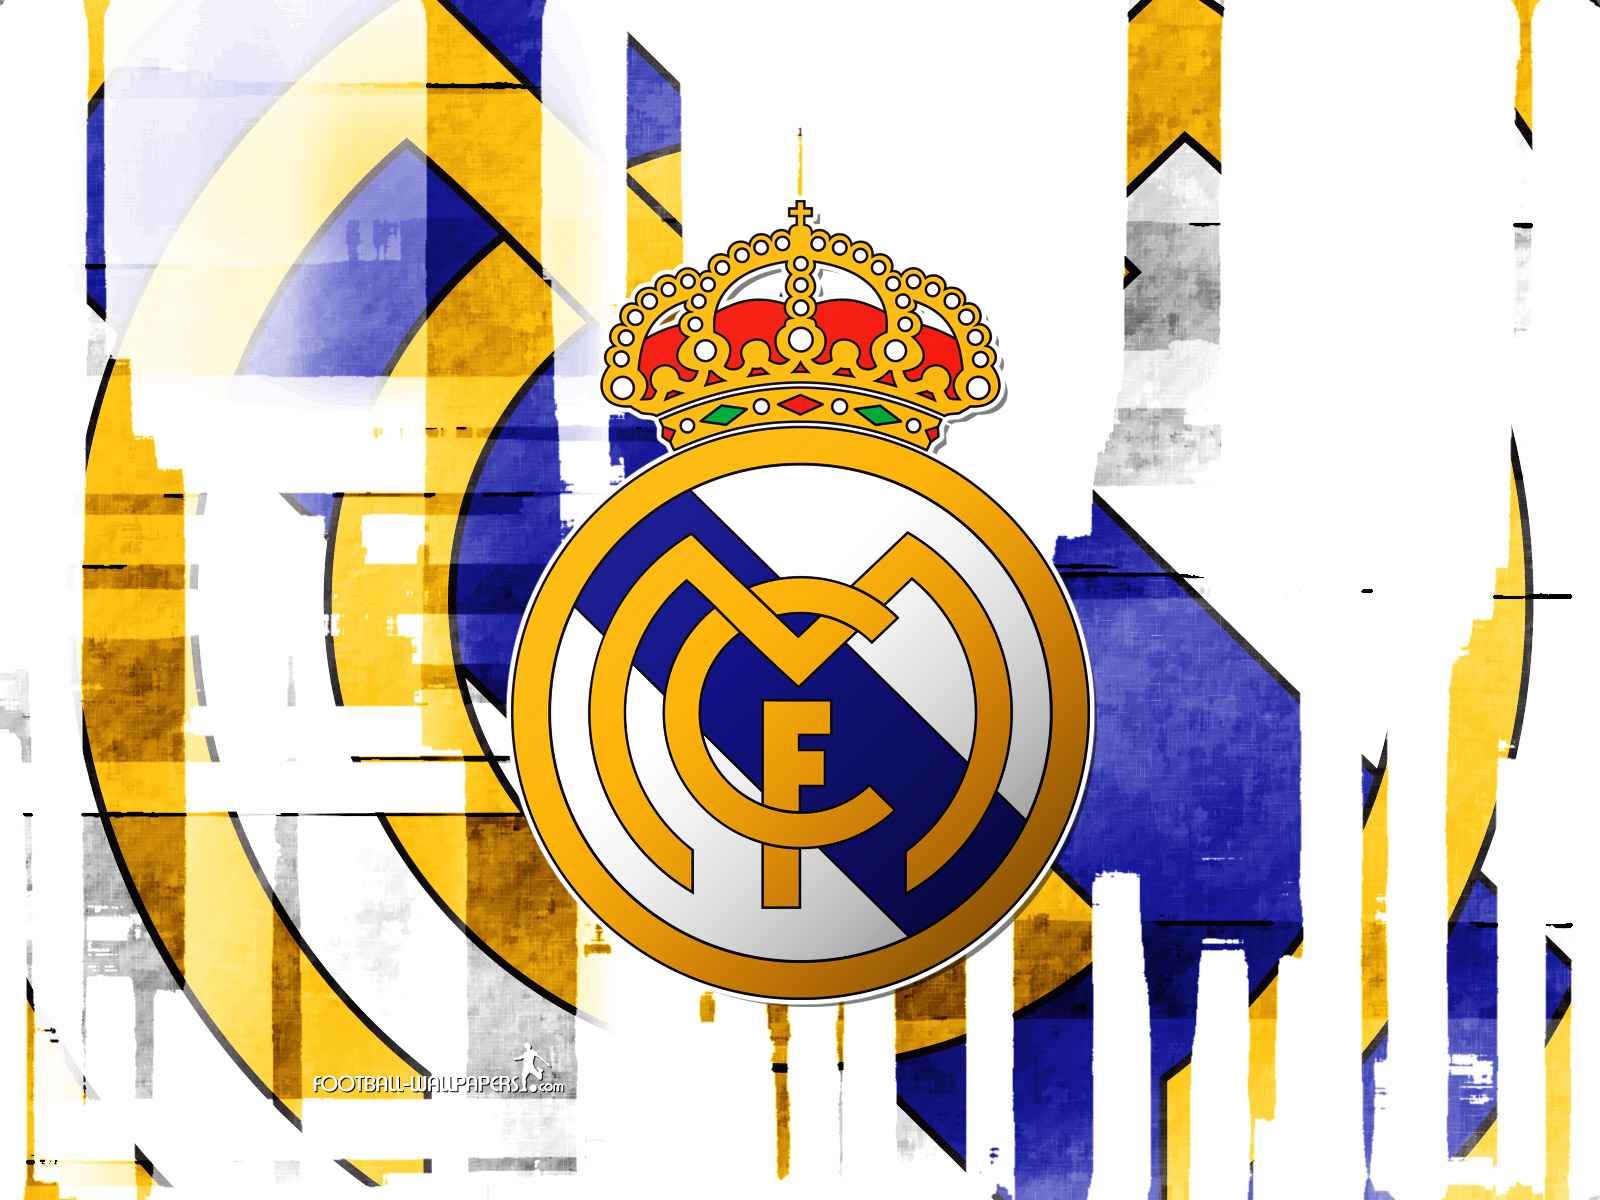 Real Madryt Cf Real Madrid Club De Futbol Hiszpa  Ski Klub